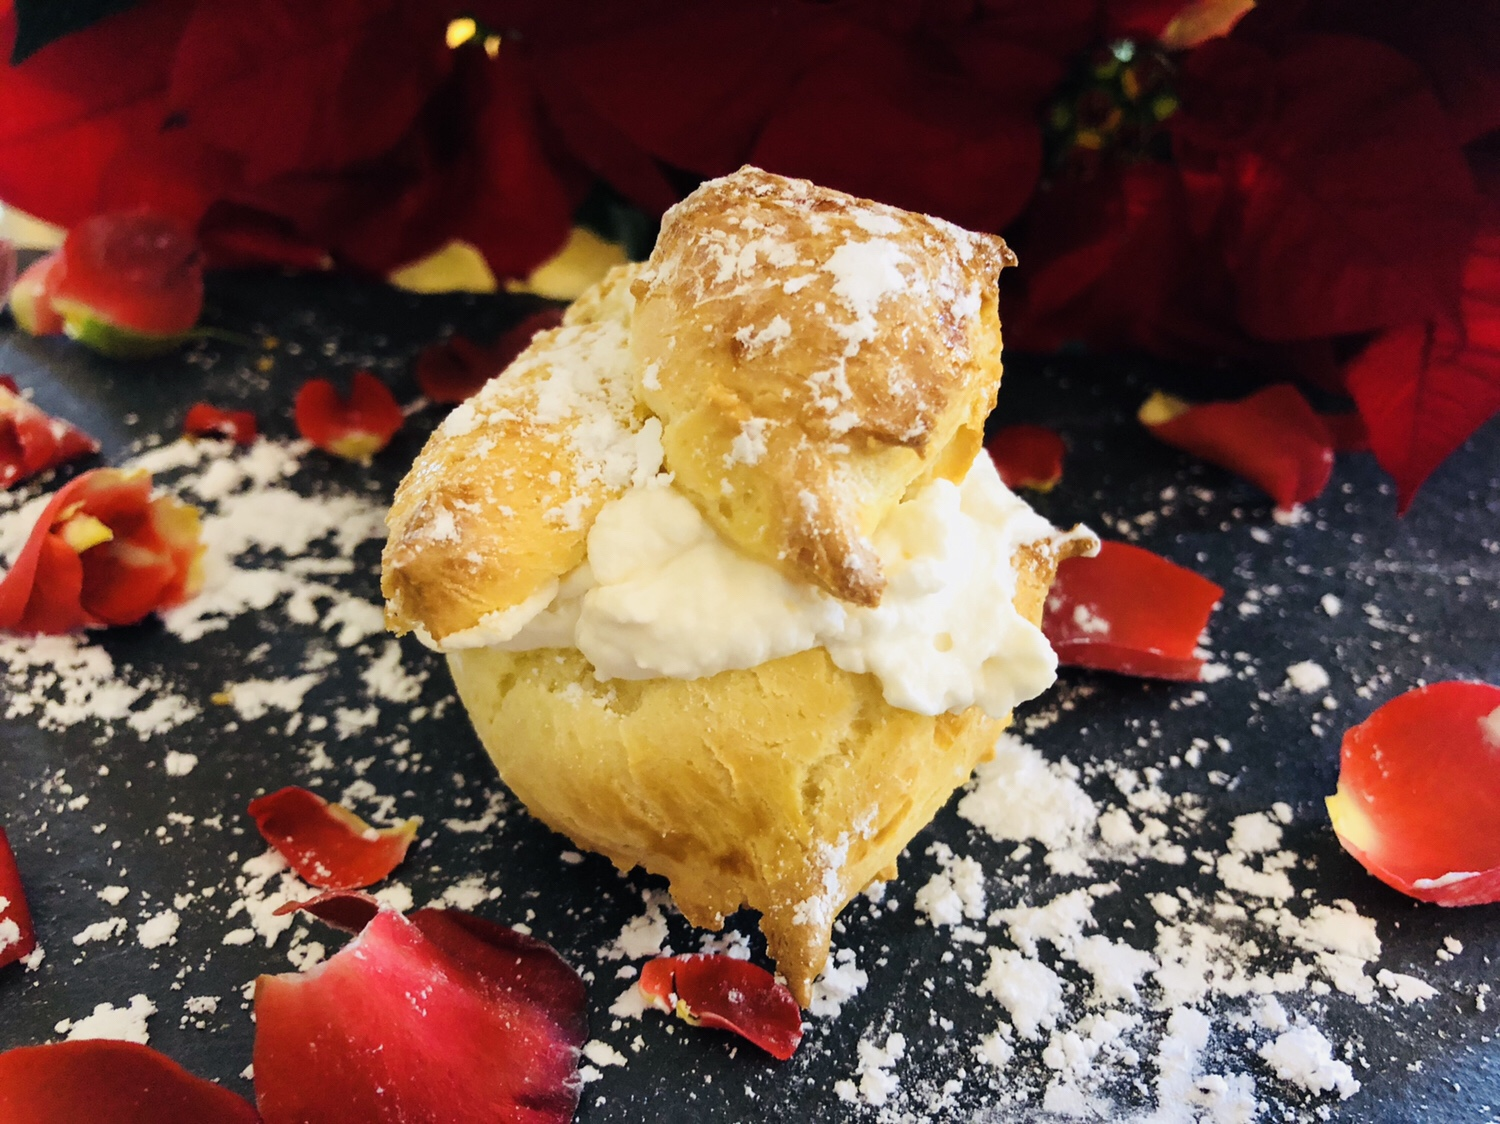 Cardamom Cream Puffs with Rose Water Whipped Cream